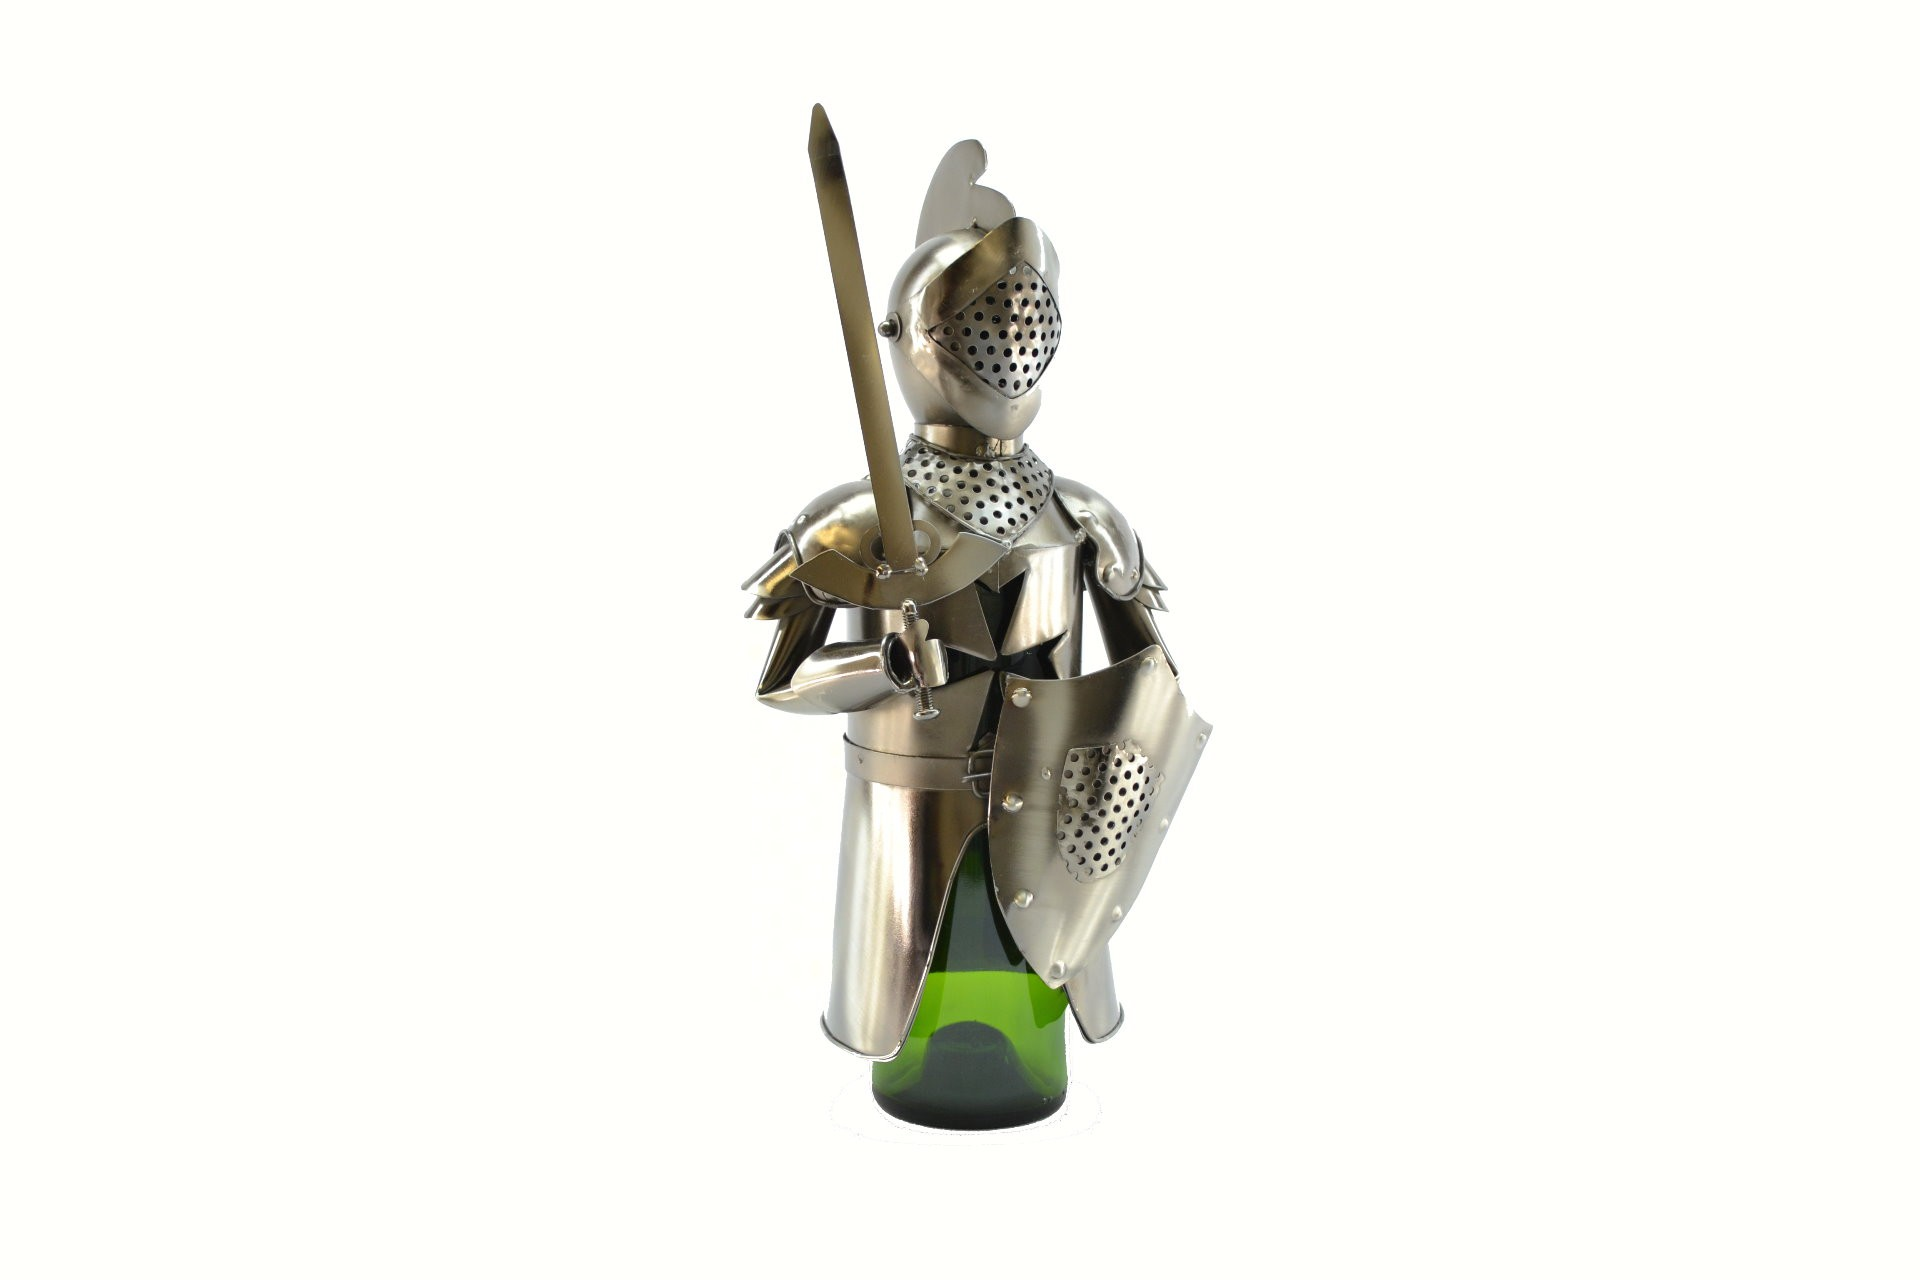 Knight Wine Bottle Holder